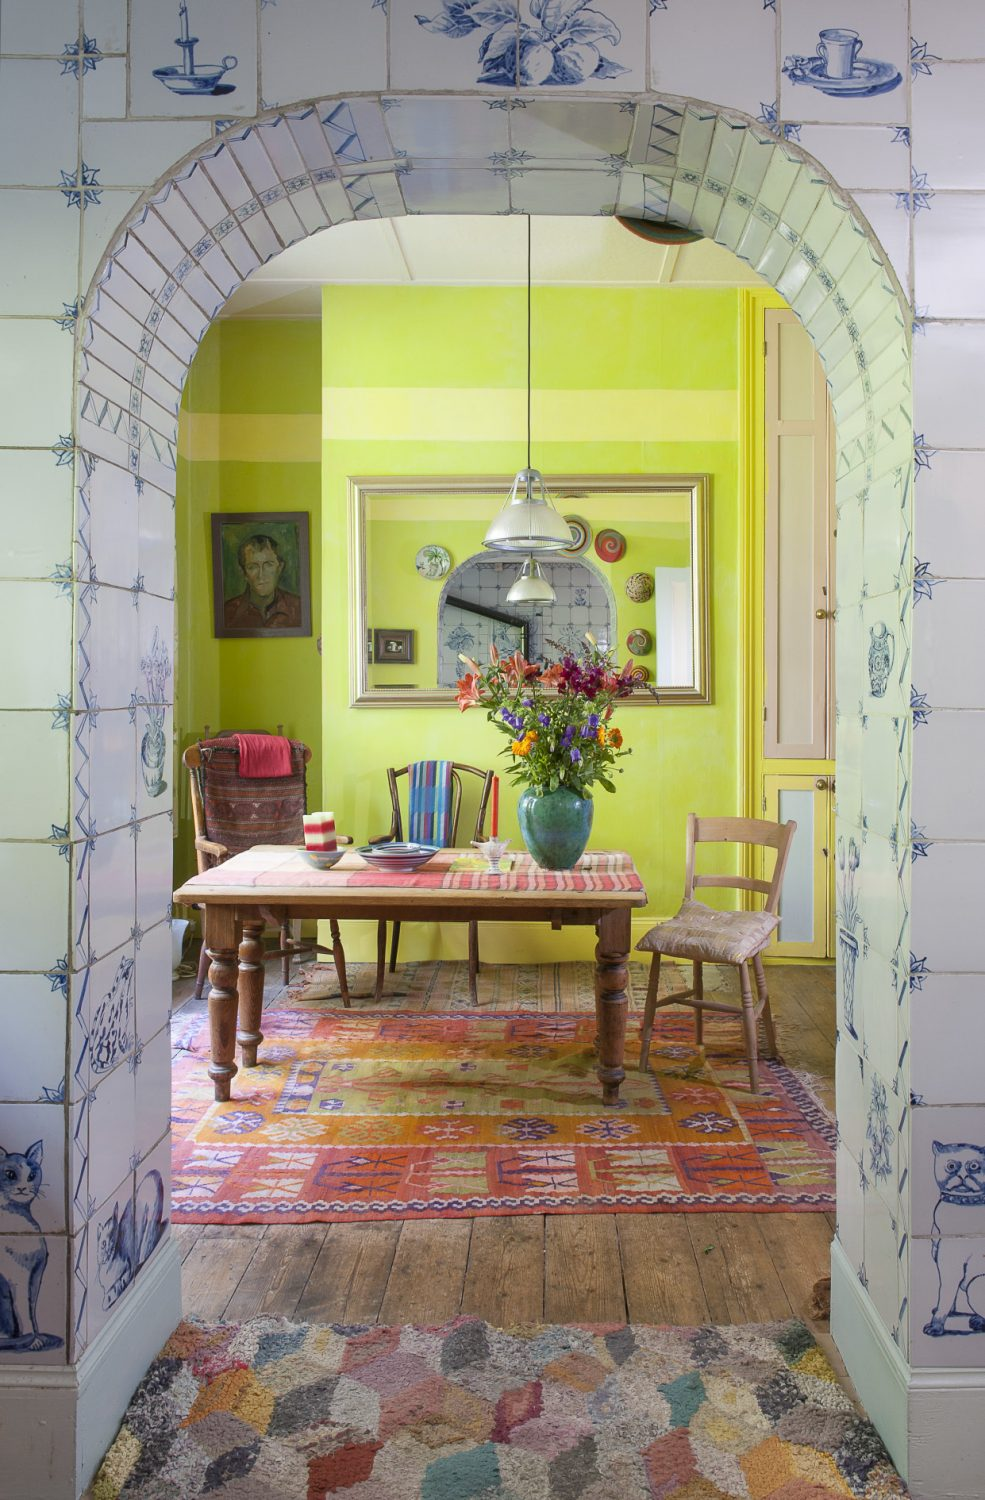 In the seating area of the kitchen, the walls are painted in vibrant shades of lime green accentuated by an intricate orange and red rug which sits under the table